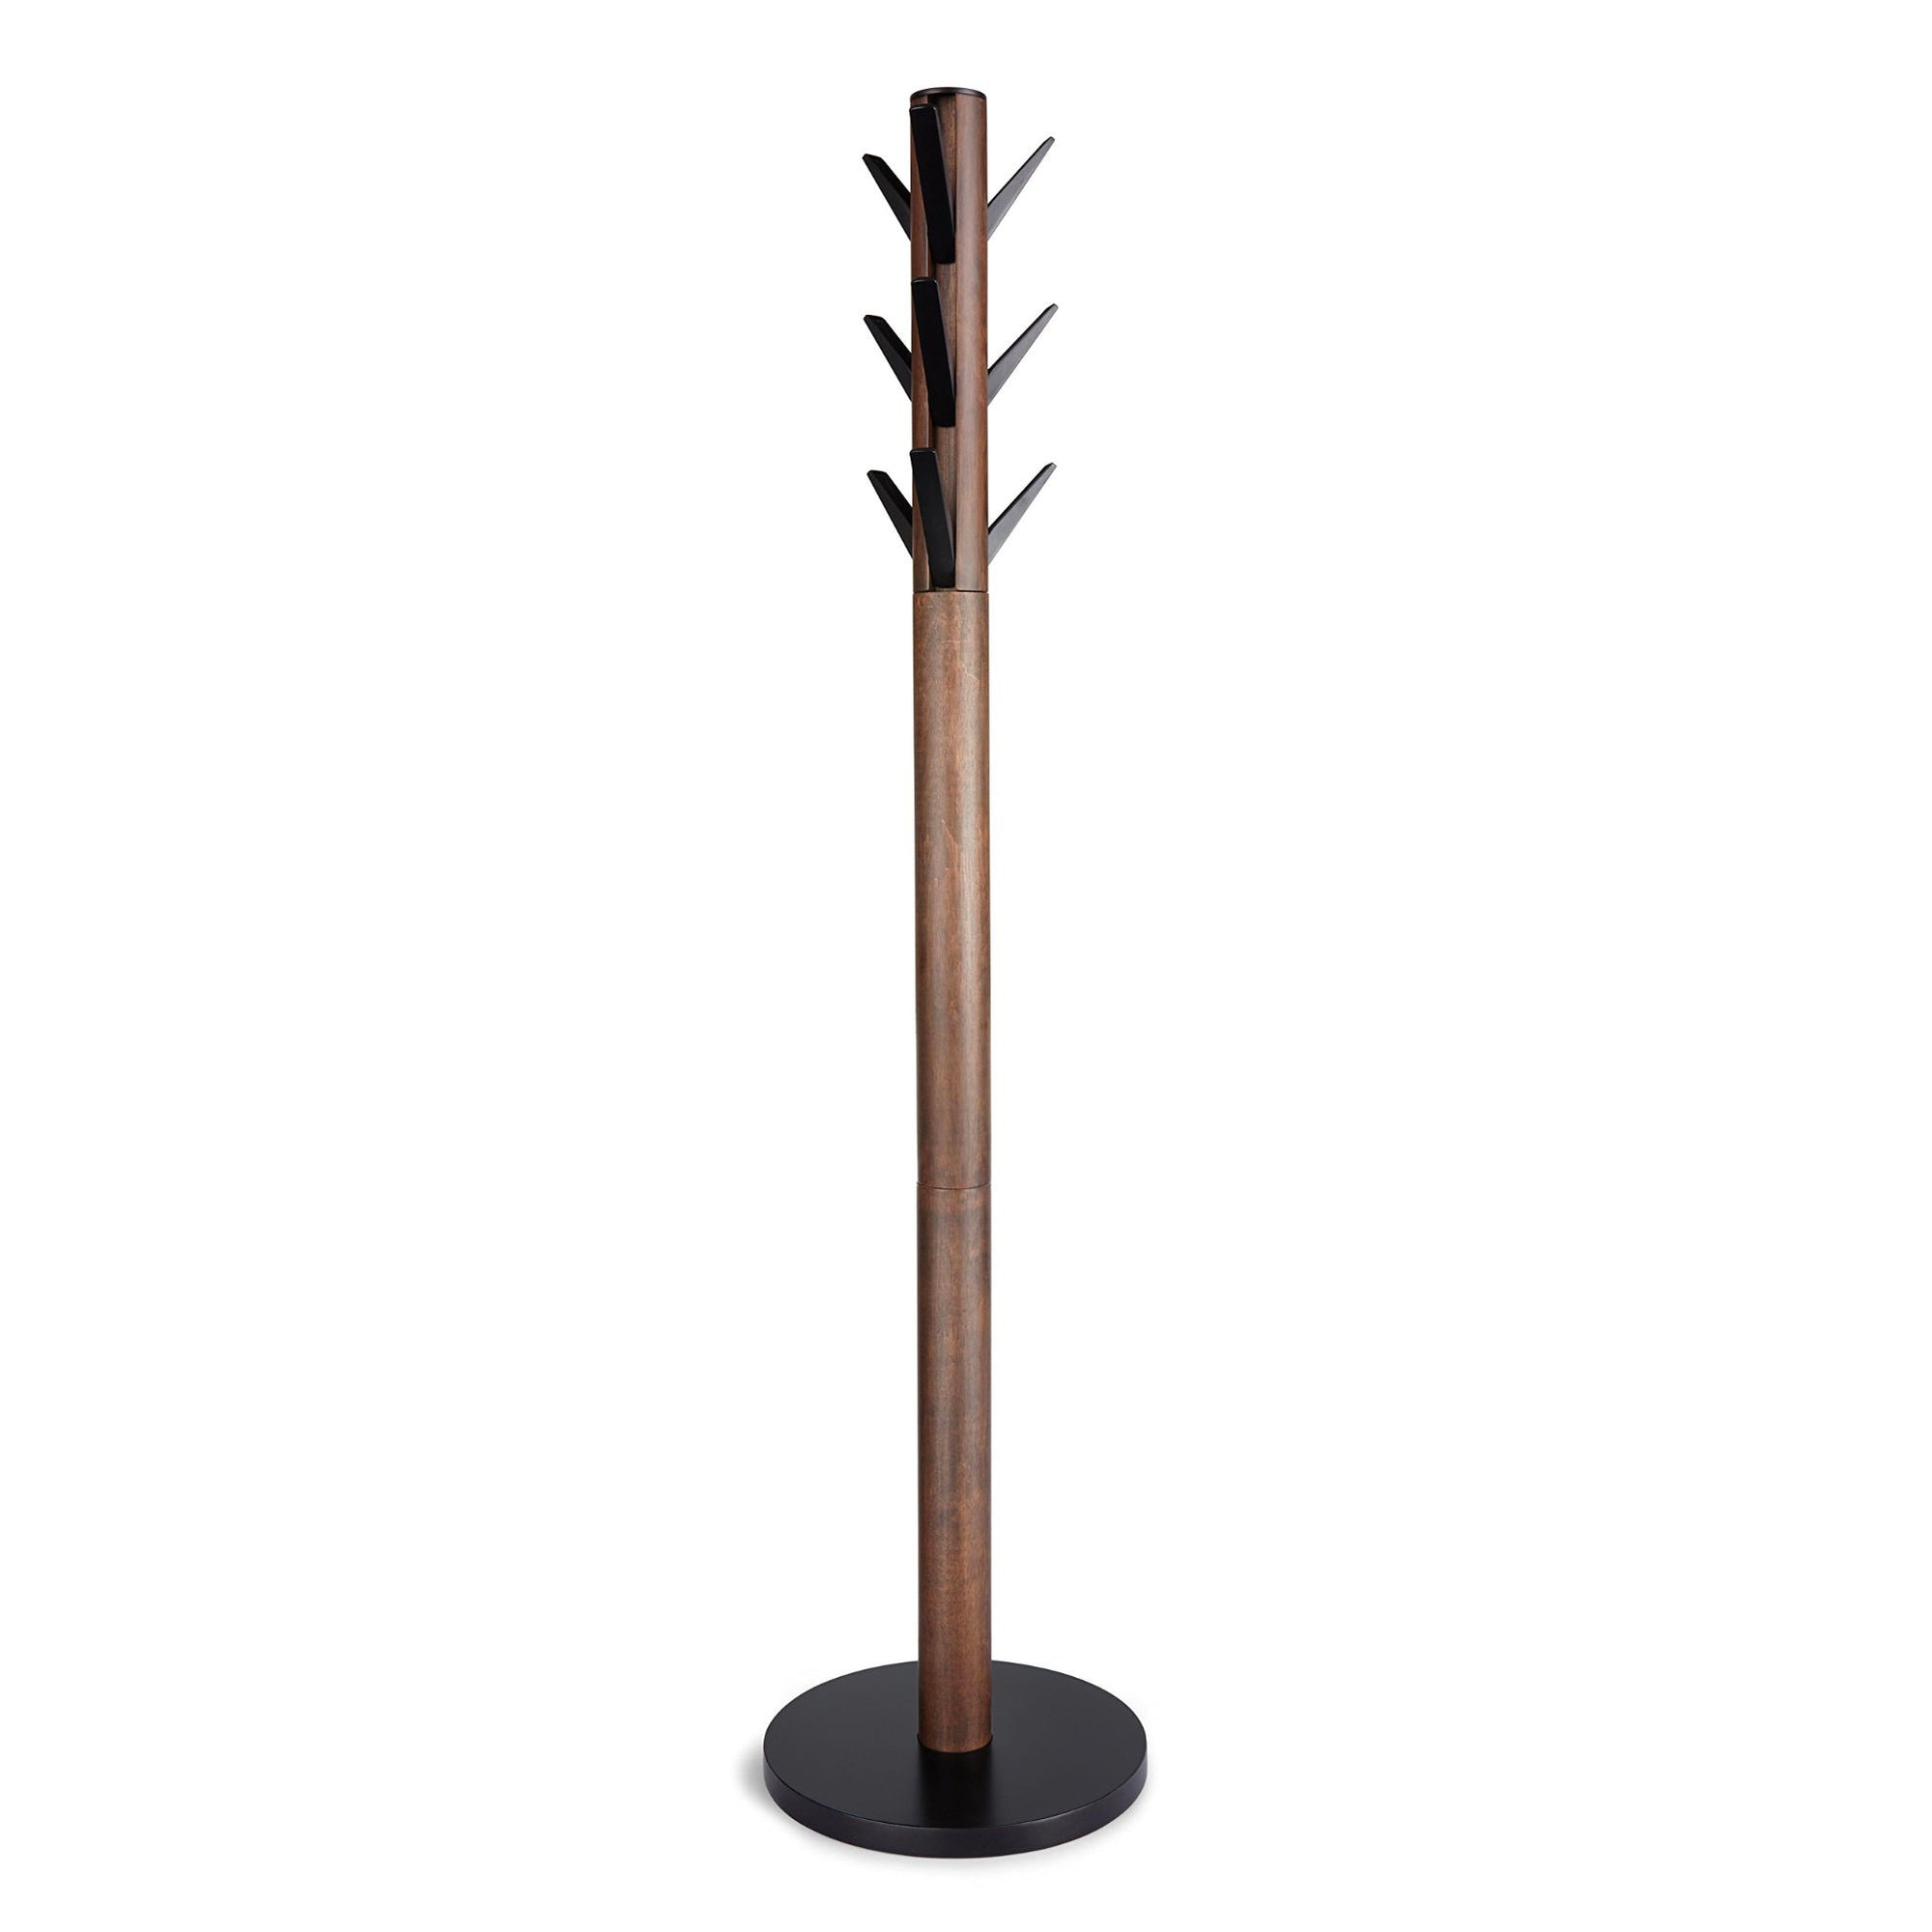 Umbra Flapper coat rack, walnut